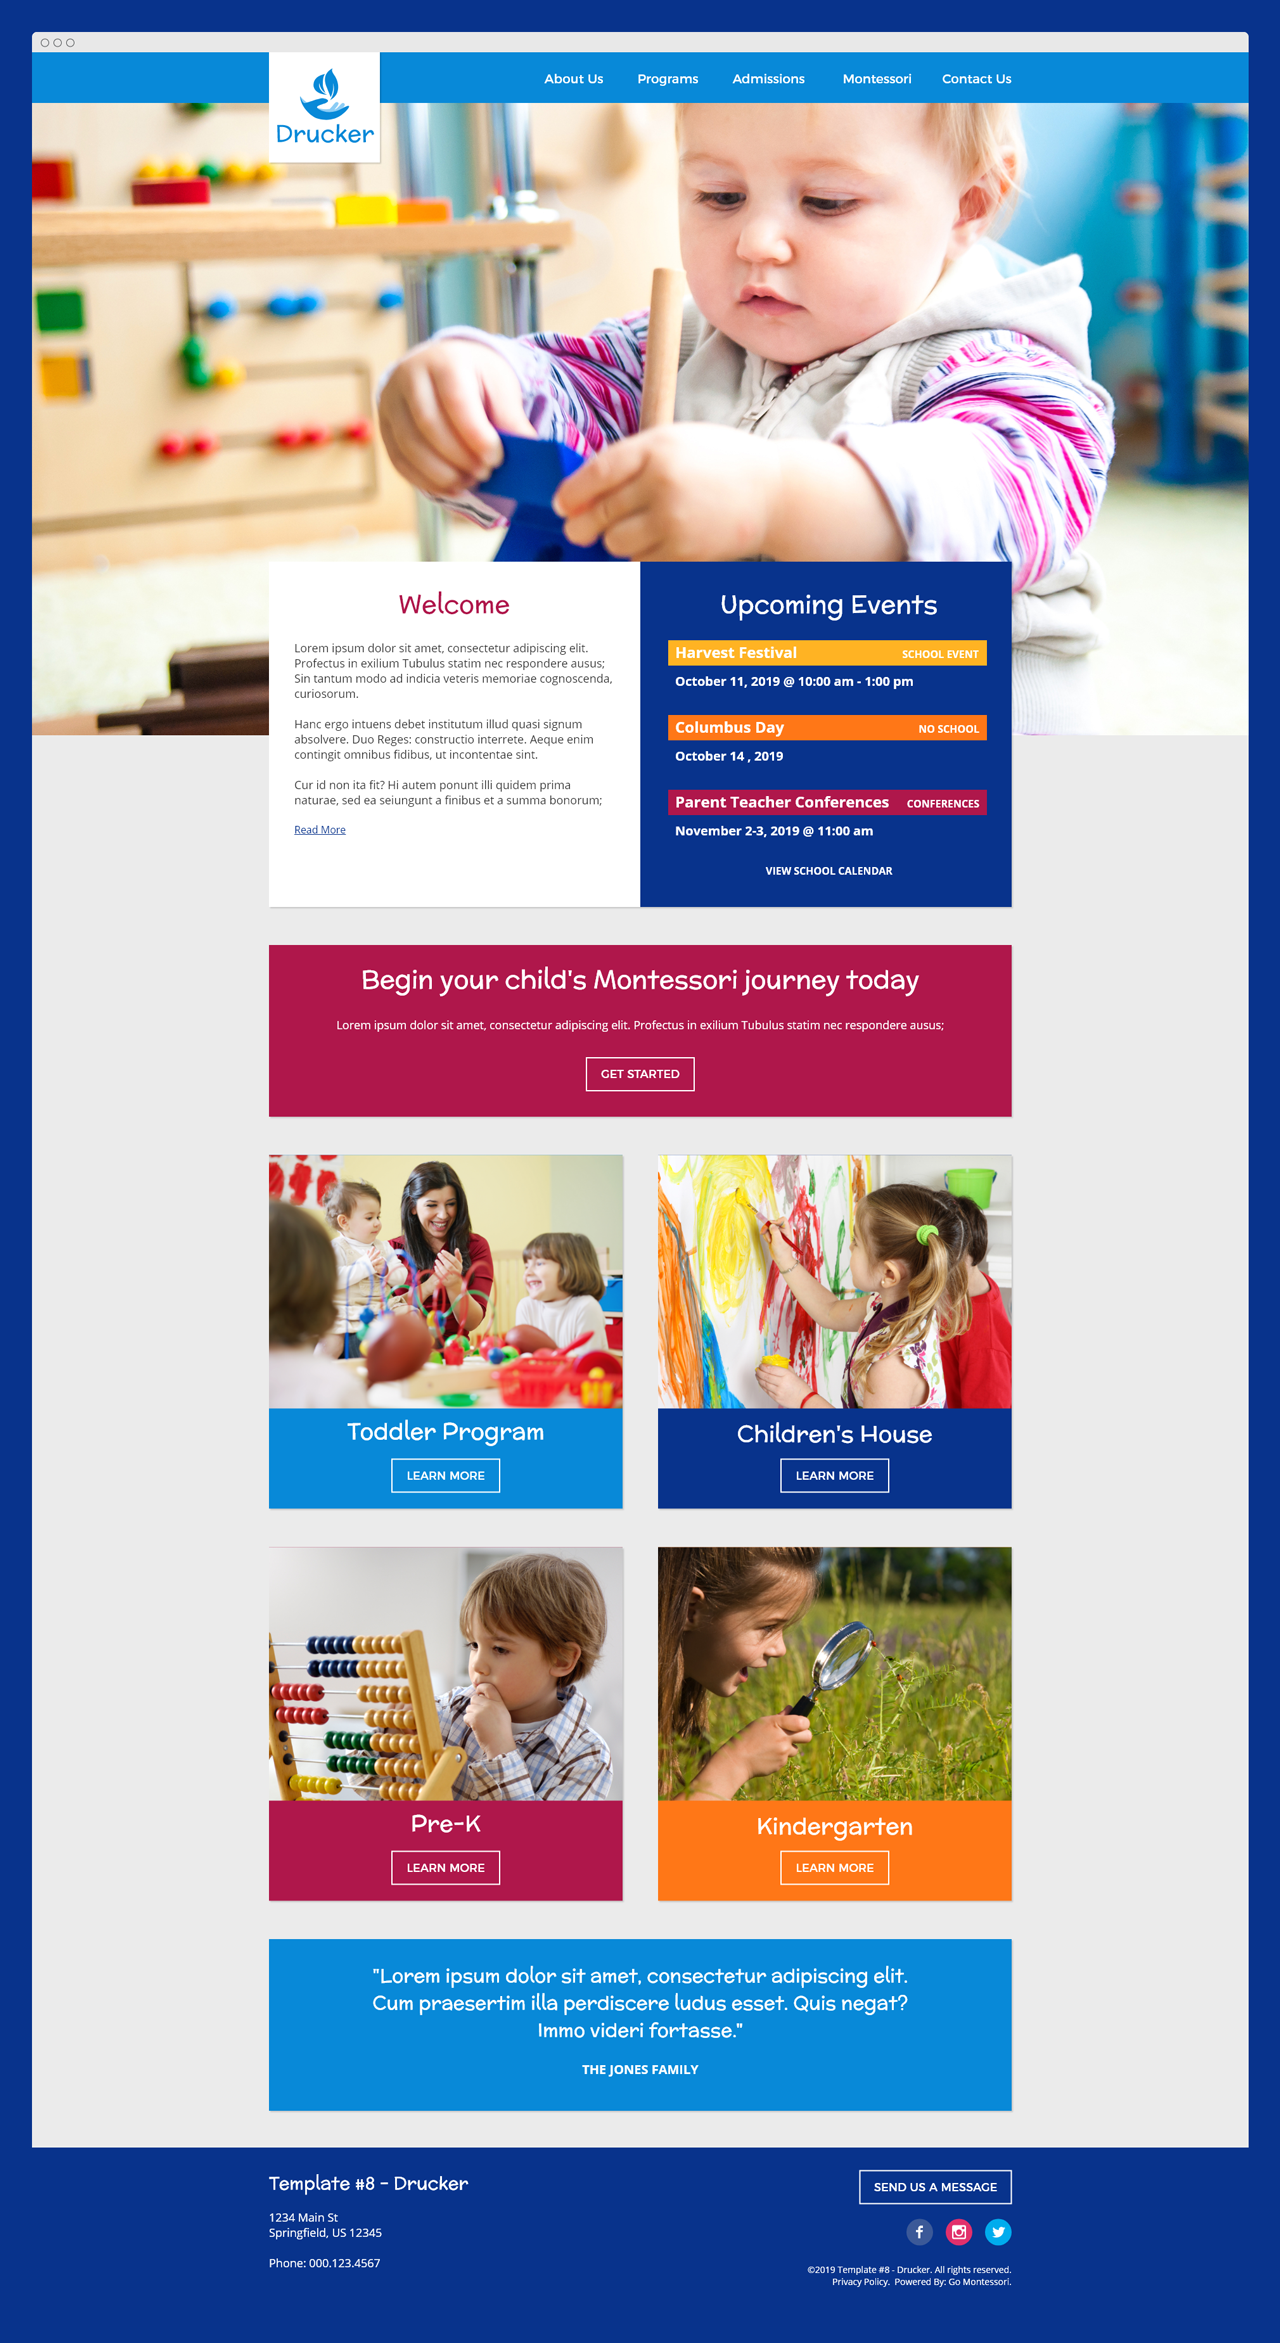 Drucker - Go Montessori Quick Launch Parent Theme